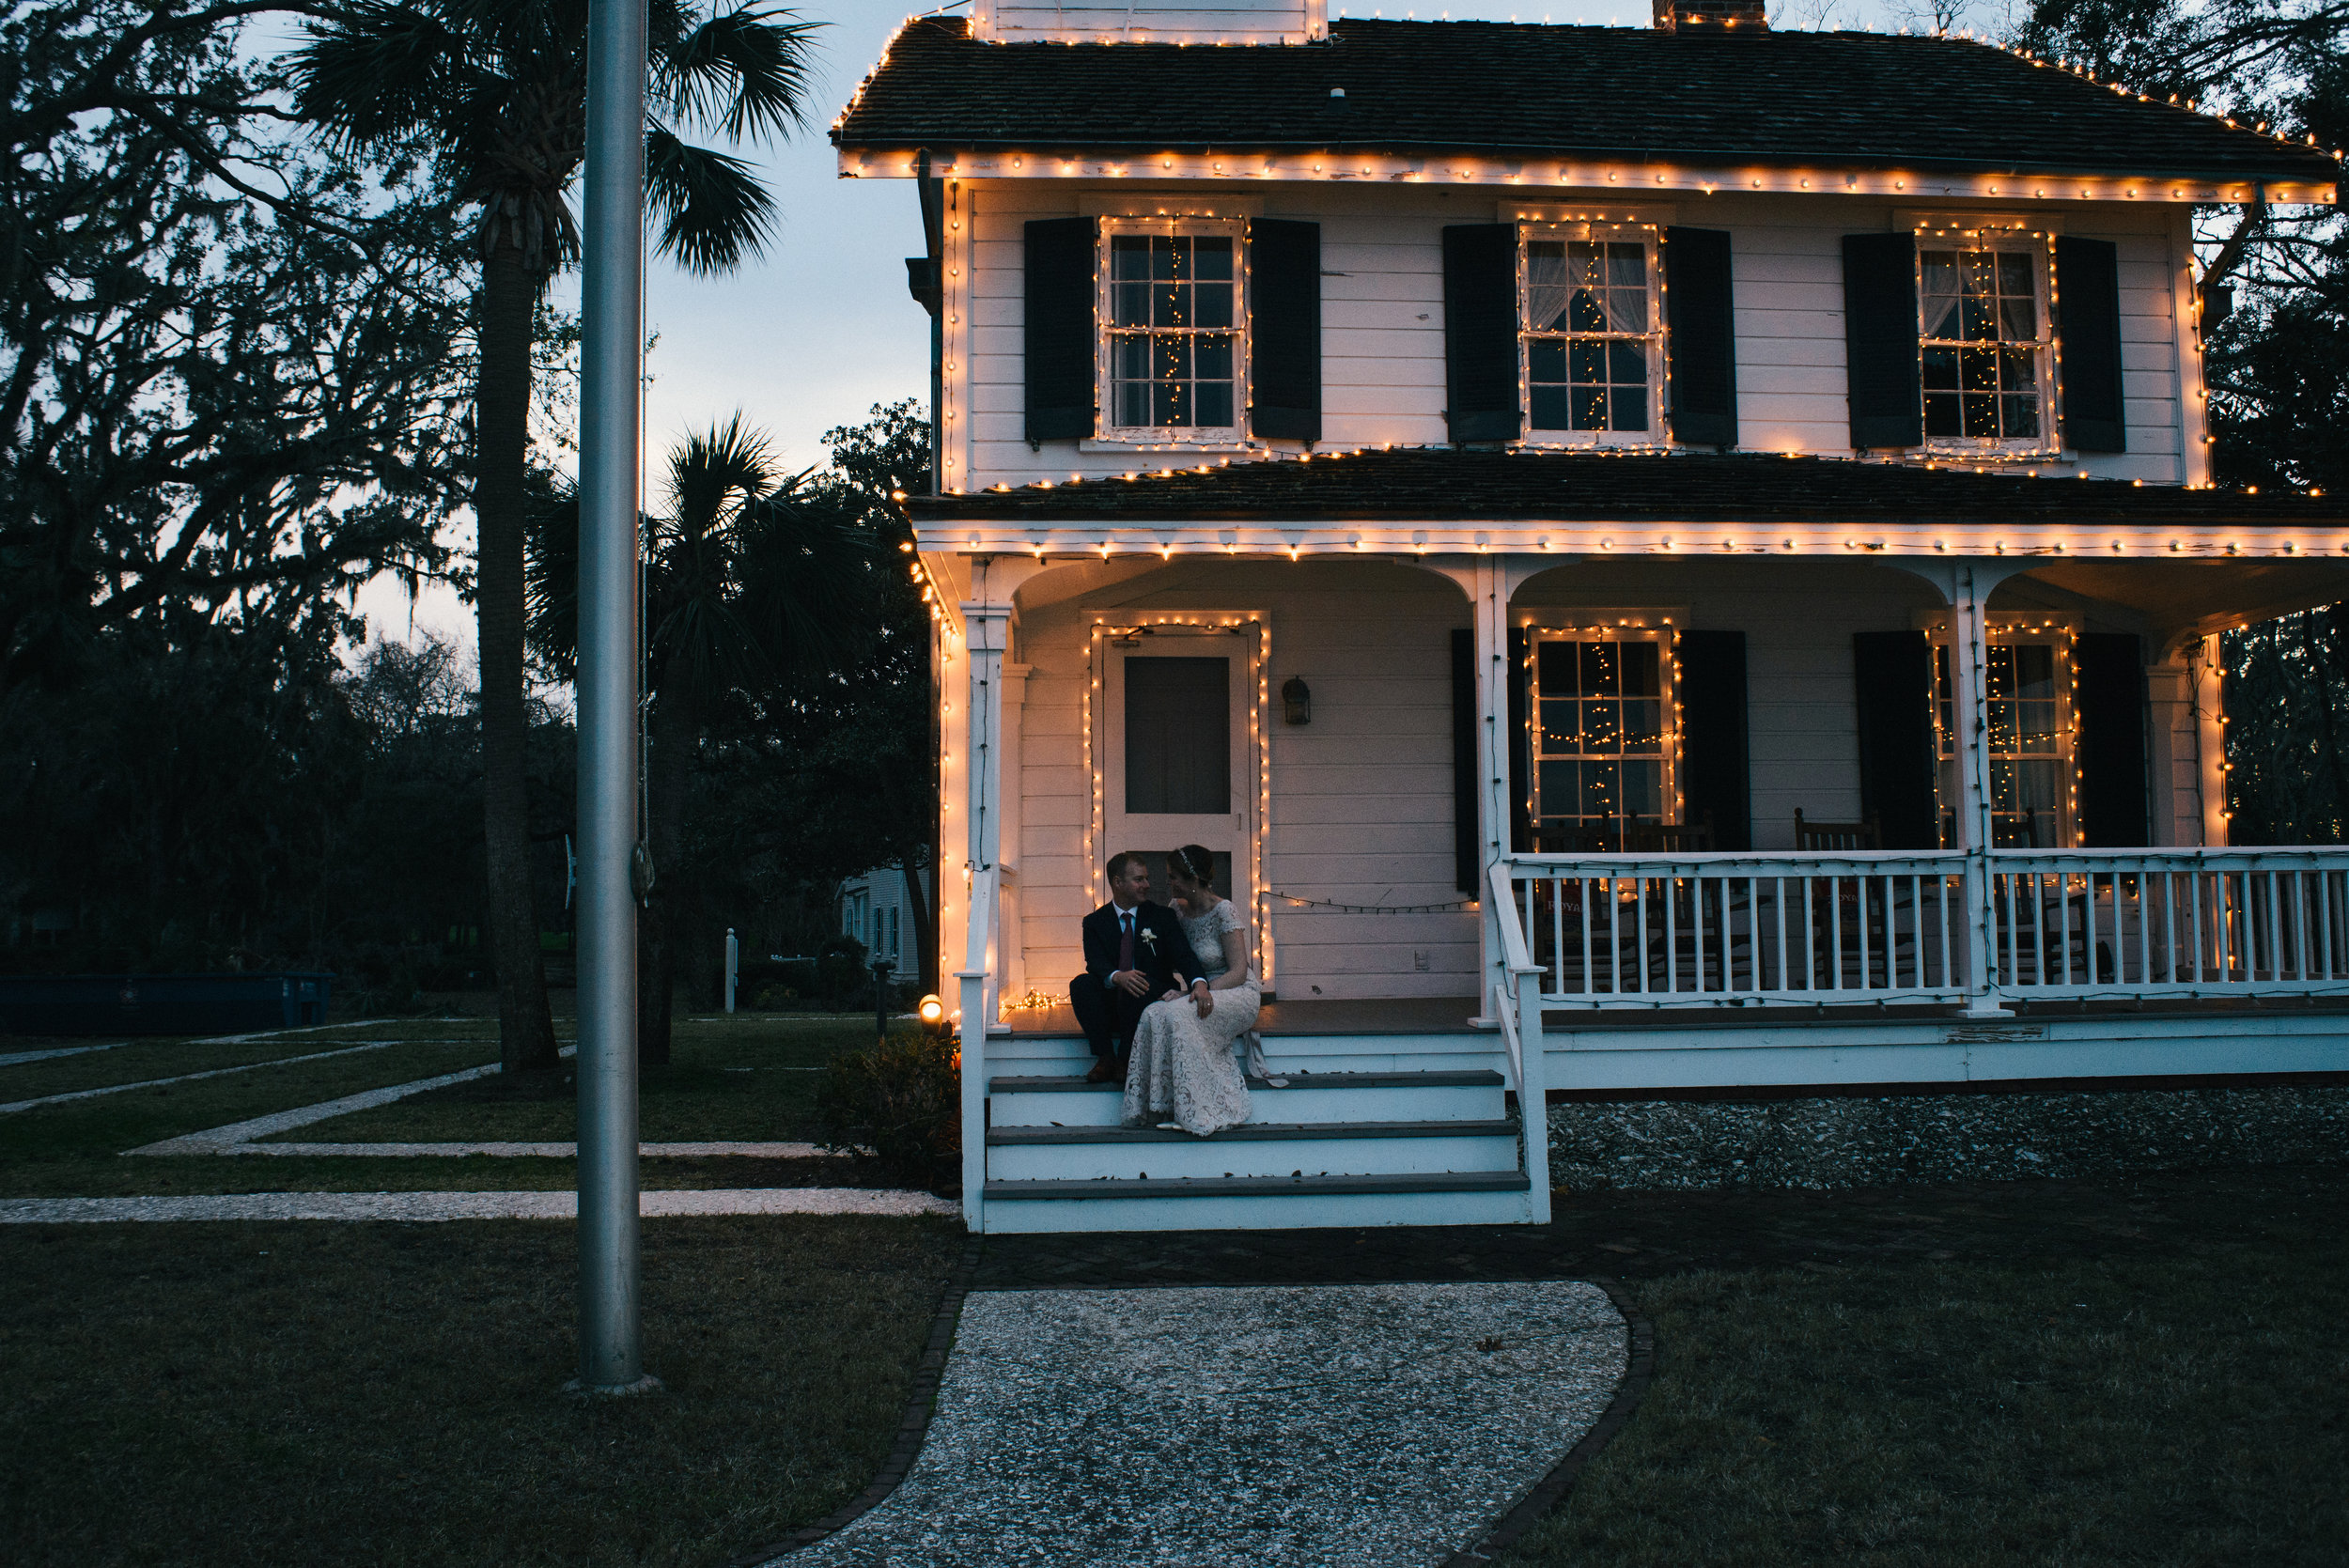 emily-and-david-daufuskie-island-wedding-december-wedding-meg-hill-photo- (181 of 728).jpg